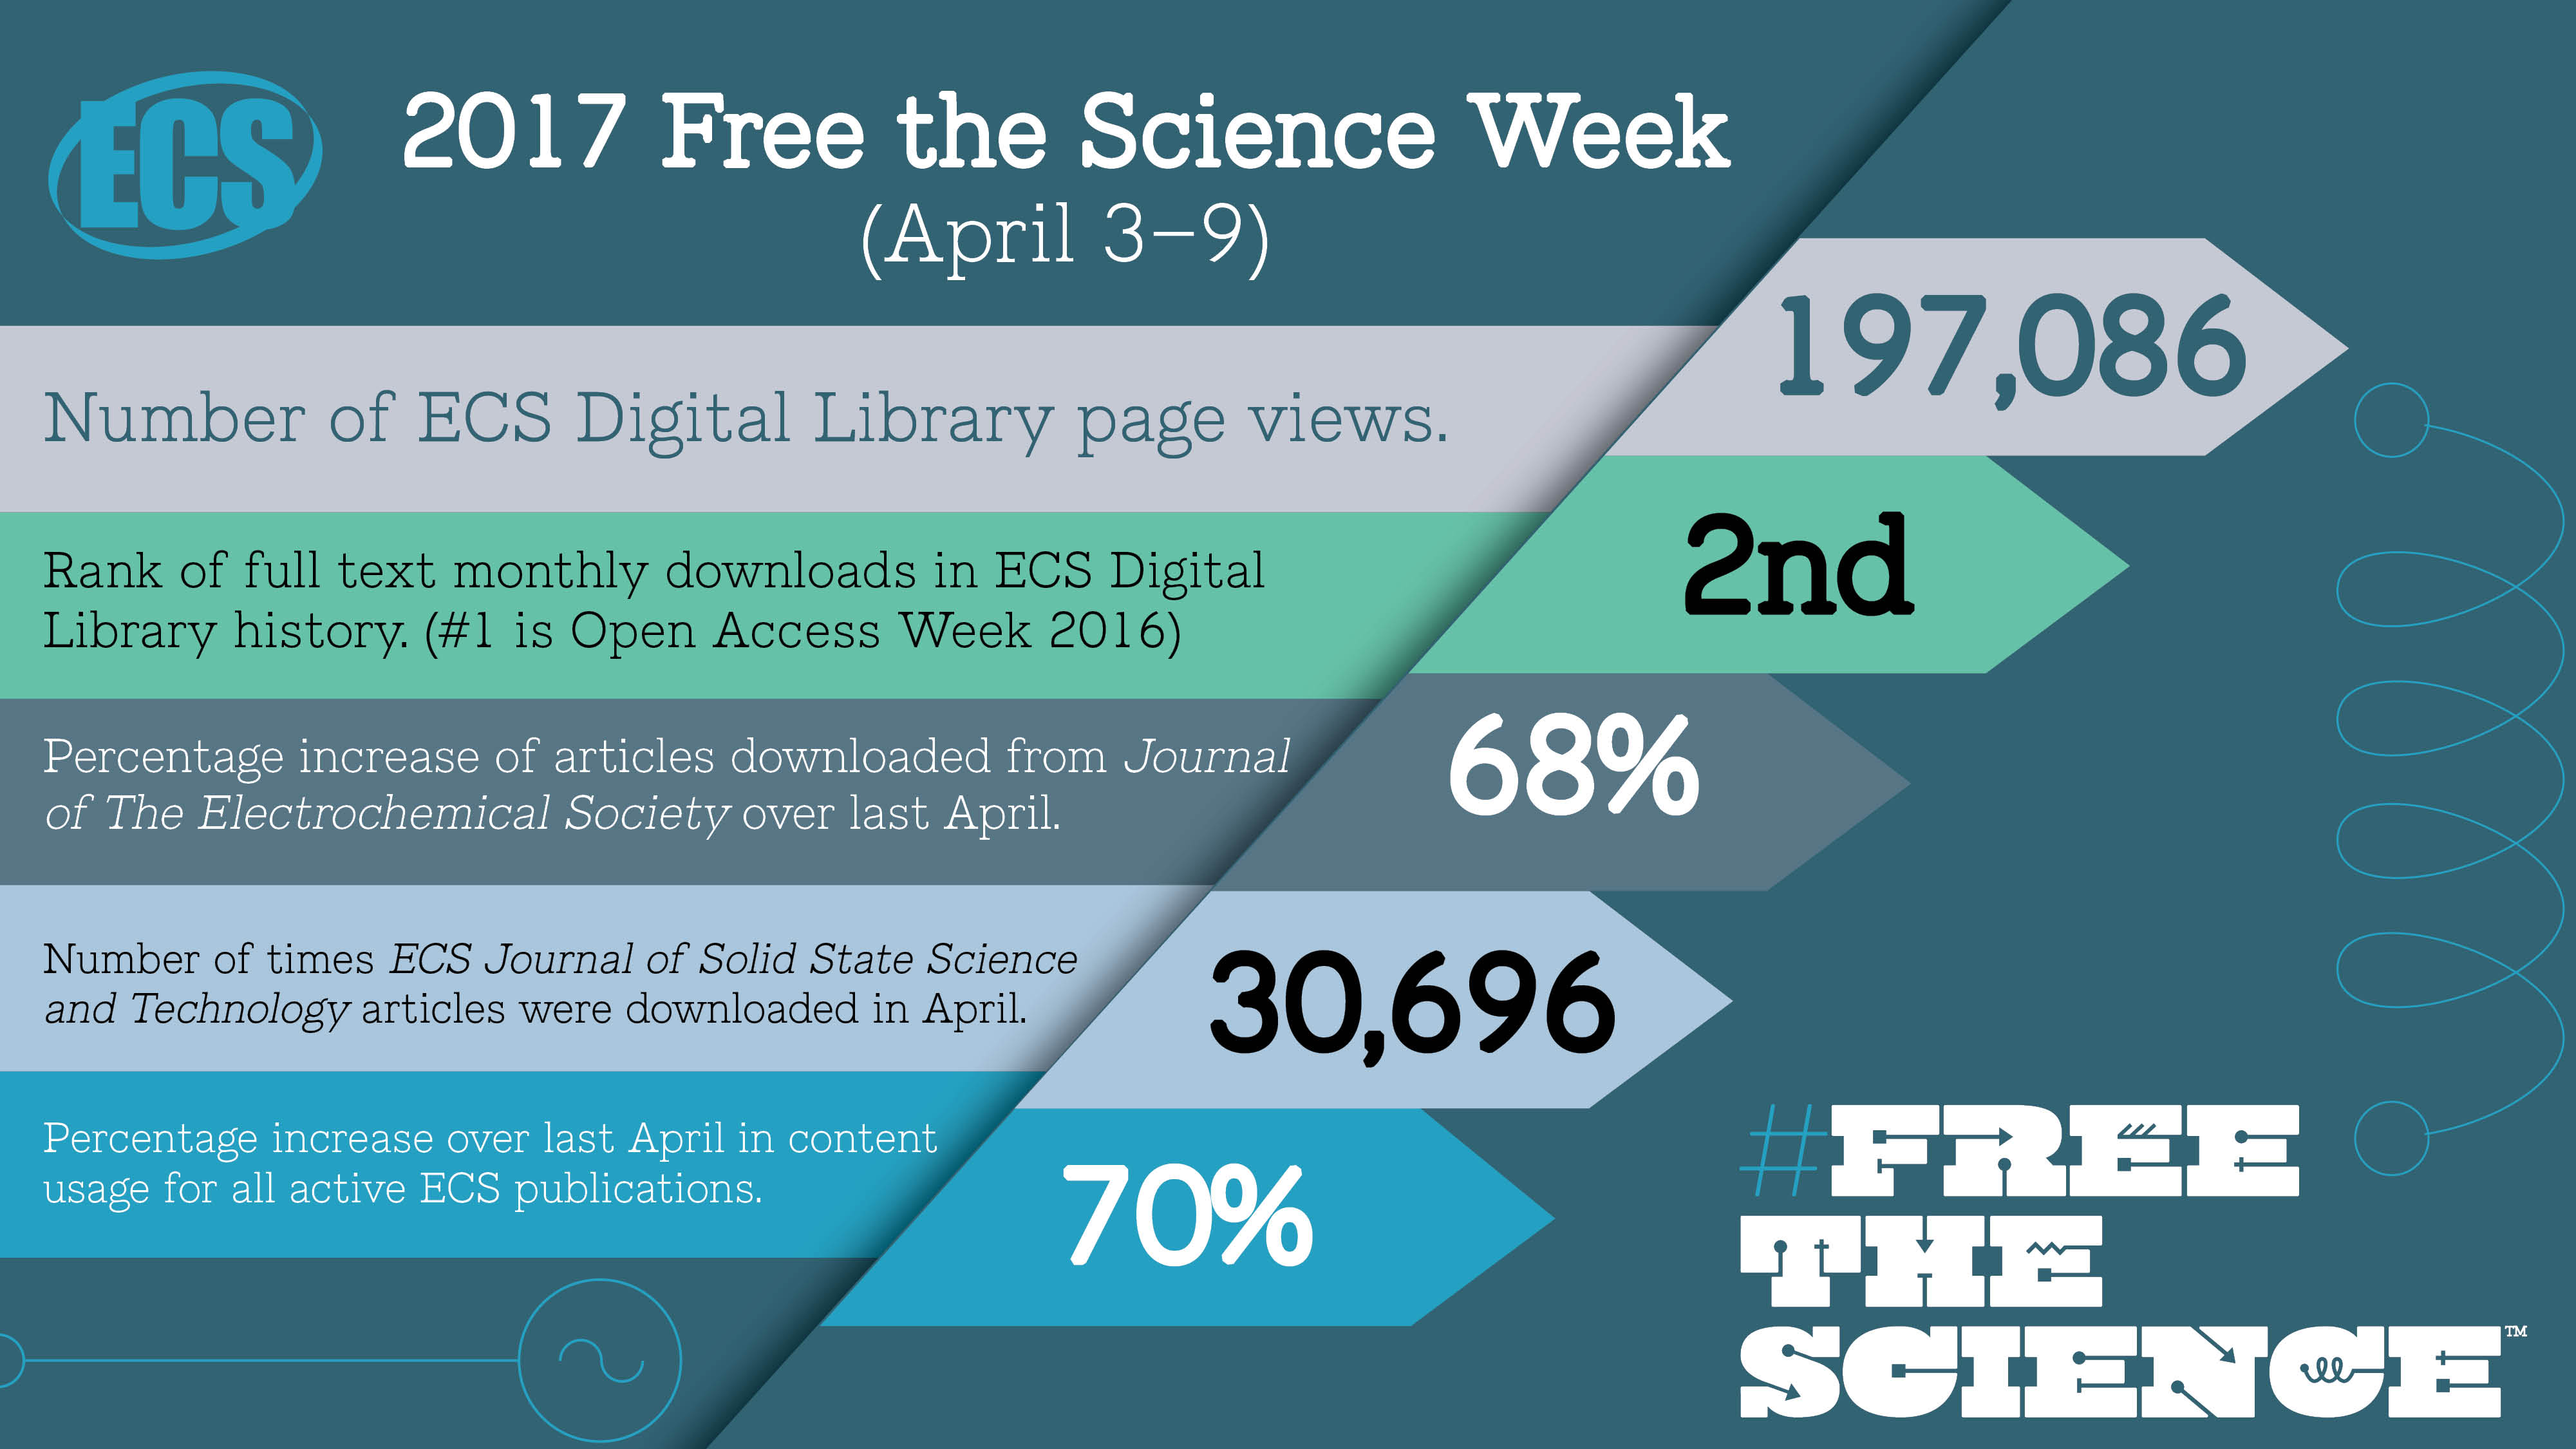 Free the Science Week